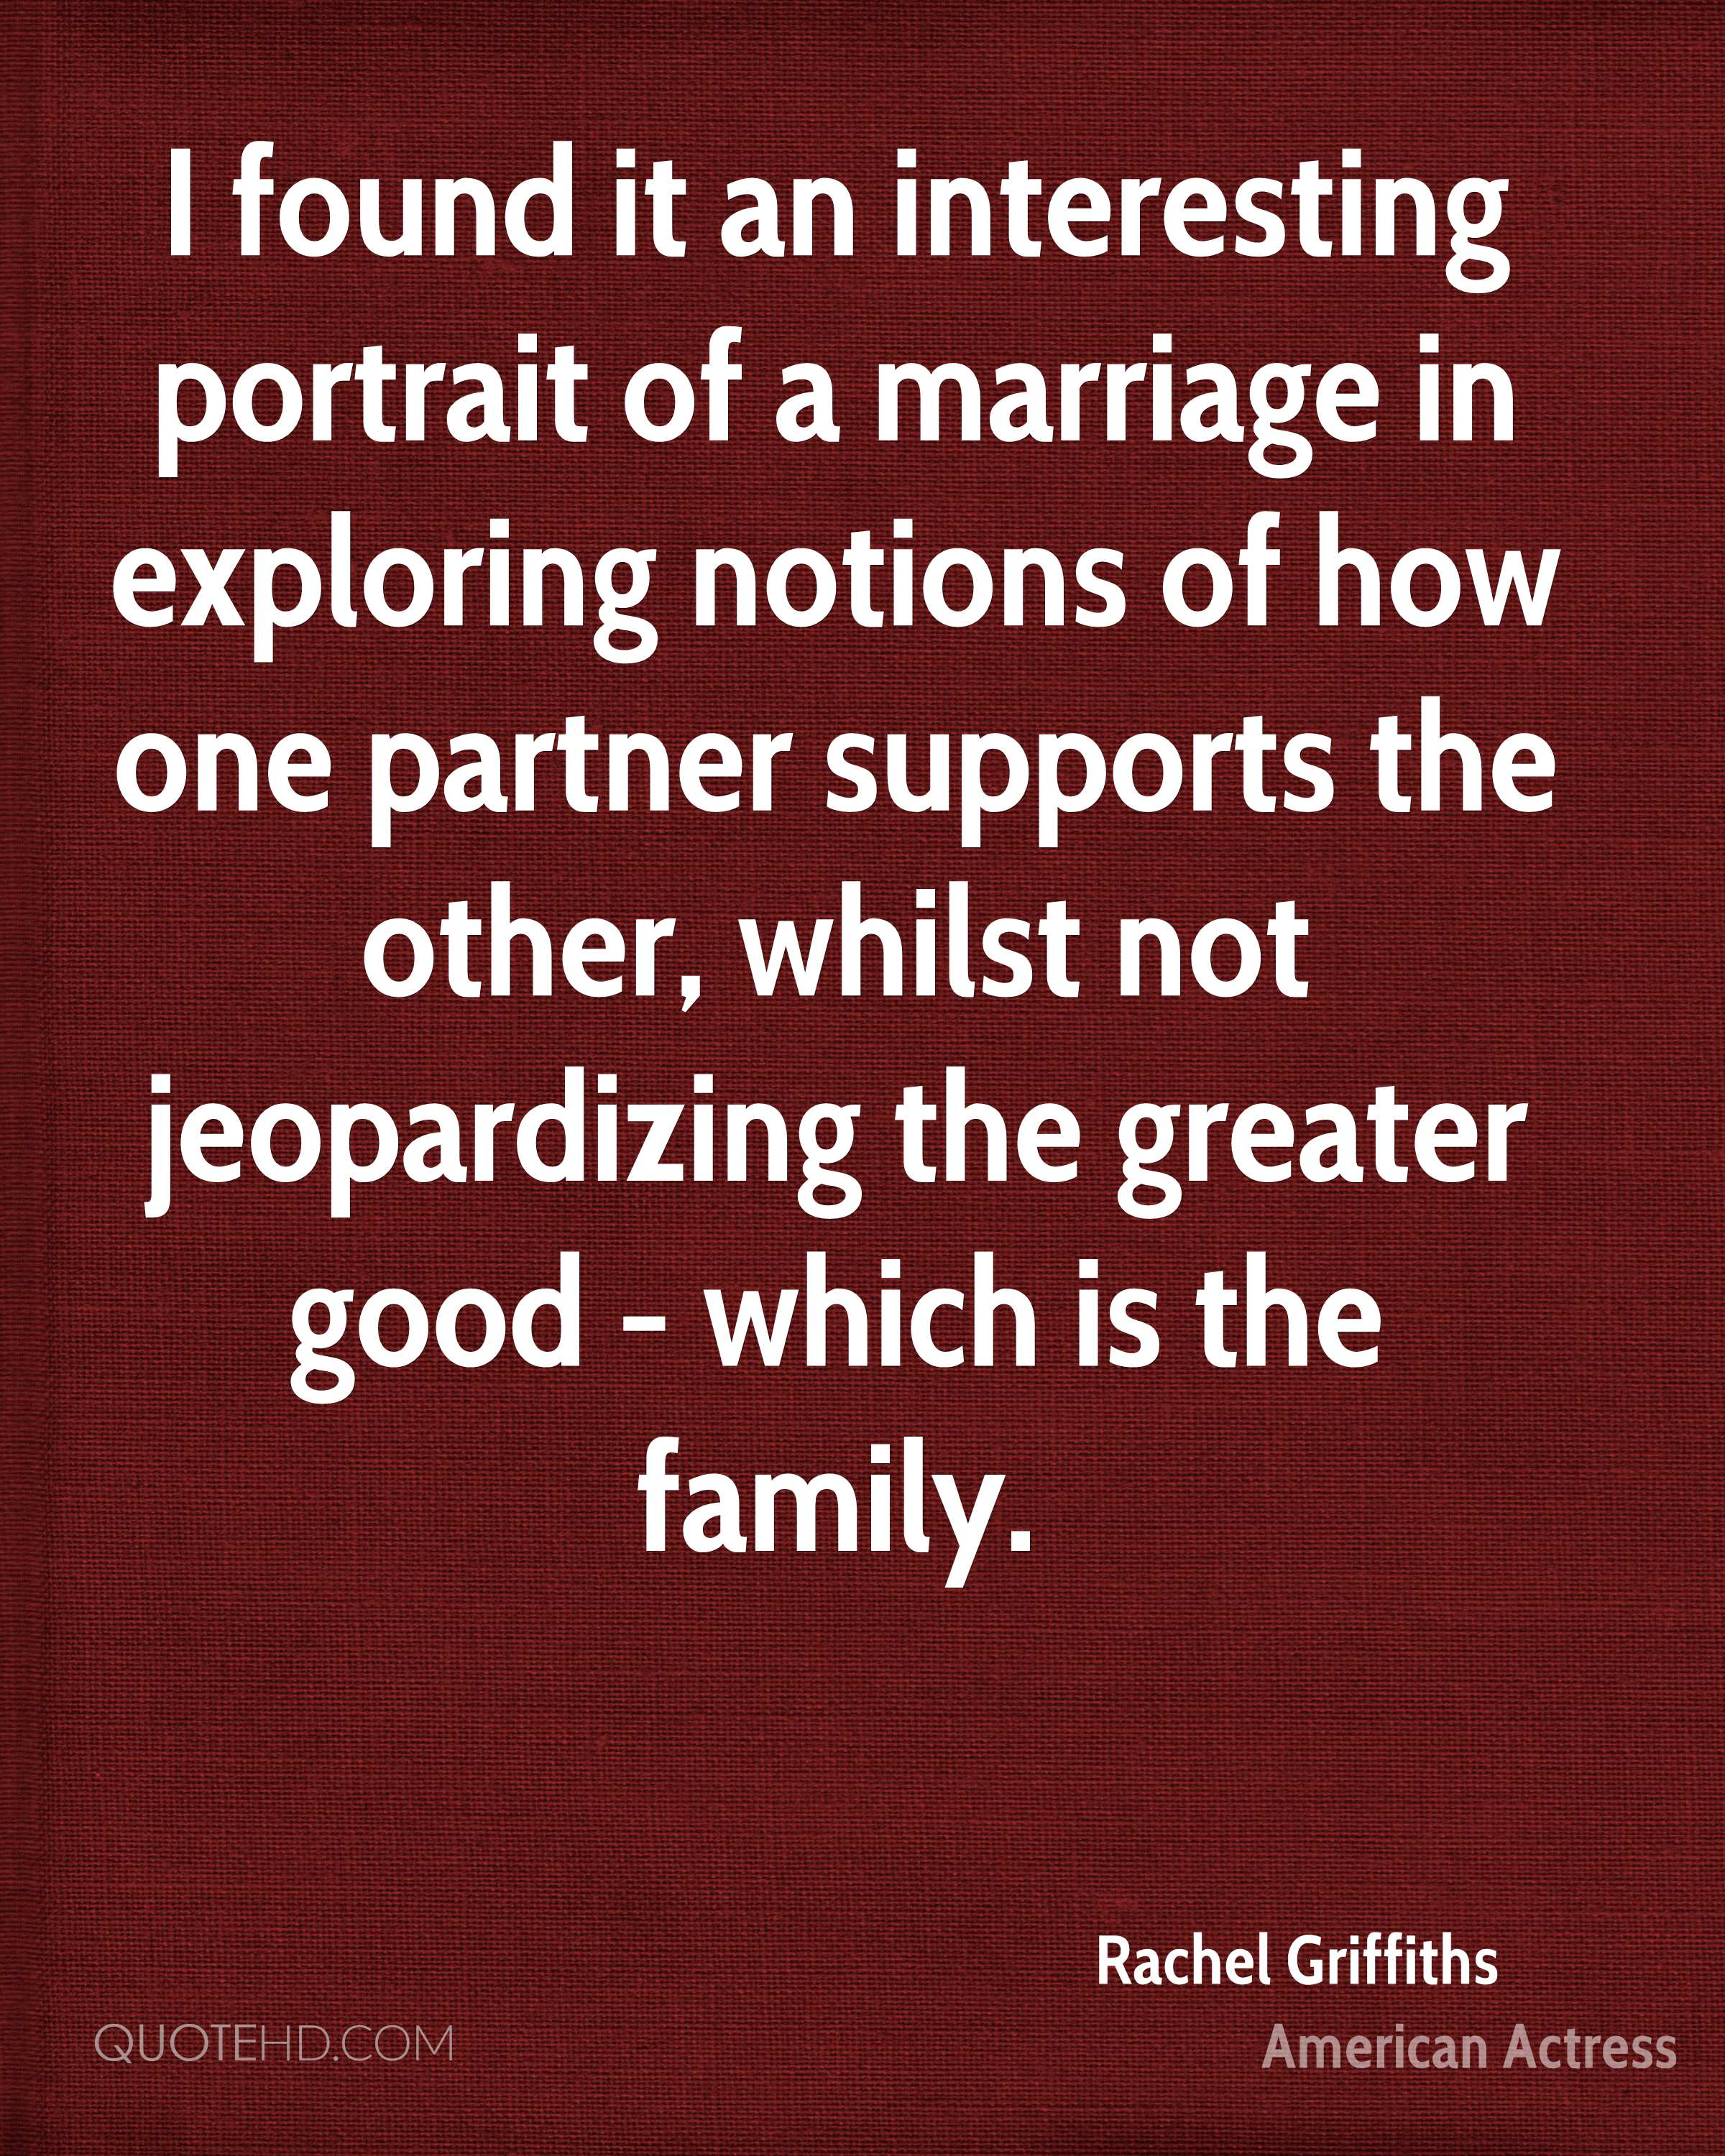 I found it an interesting portrait of a marriage in exploring notions of how one partner supports the other, whilst not jeopardizing the greater good - which is the family.